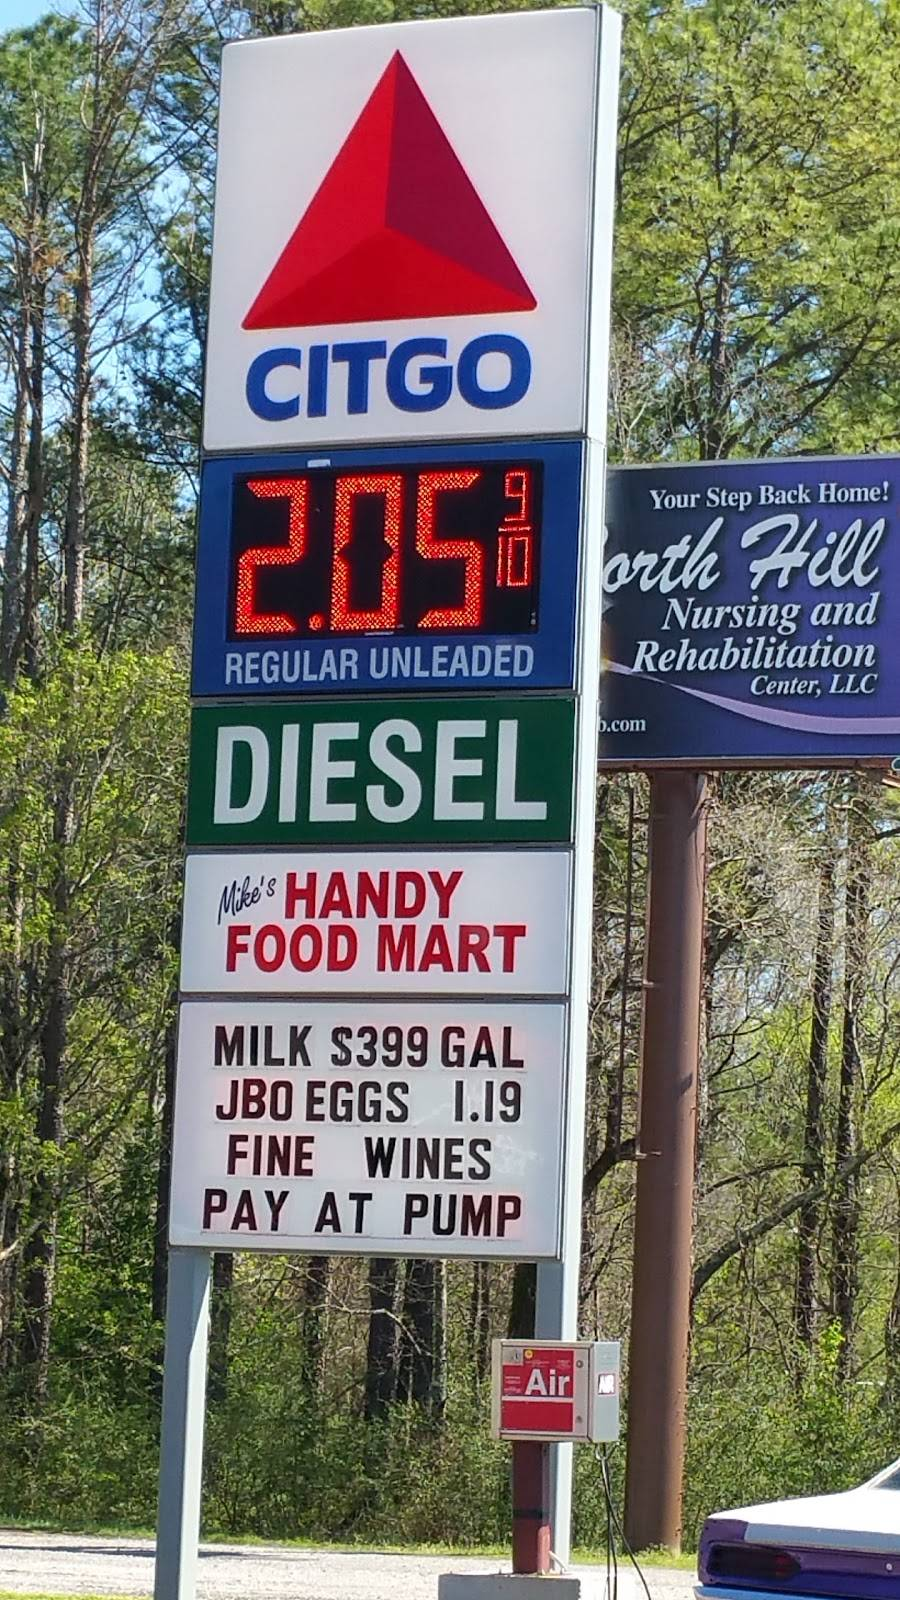 Mikes Handy Food Mart - gas station    Photo 1 of 1   Address: 439 Decatur Hwy, Gardendale, AL 35071, USA   Phone: (205) 631-2954